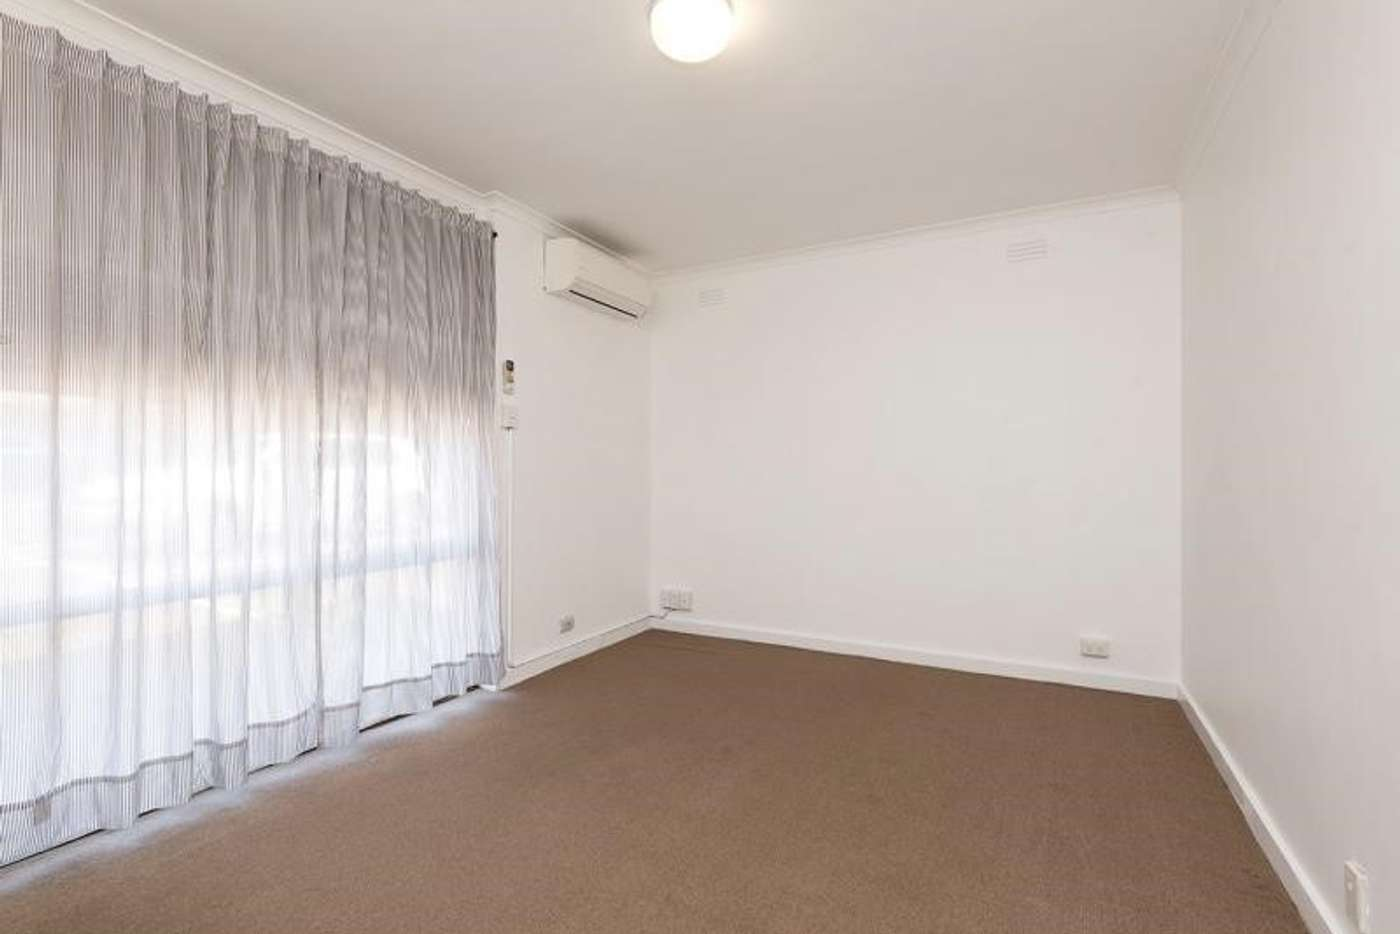 Sixth view of Homely unit listing, 18/50 Middle Rd, Maribyrnong VIC 3032